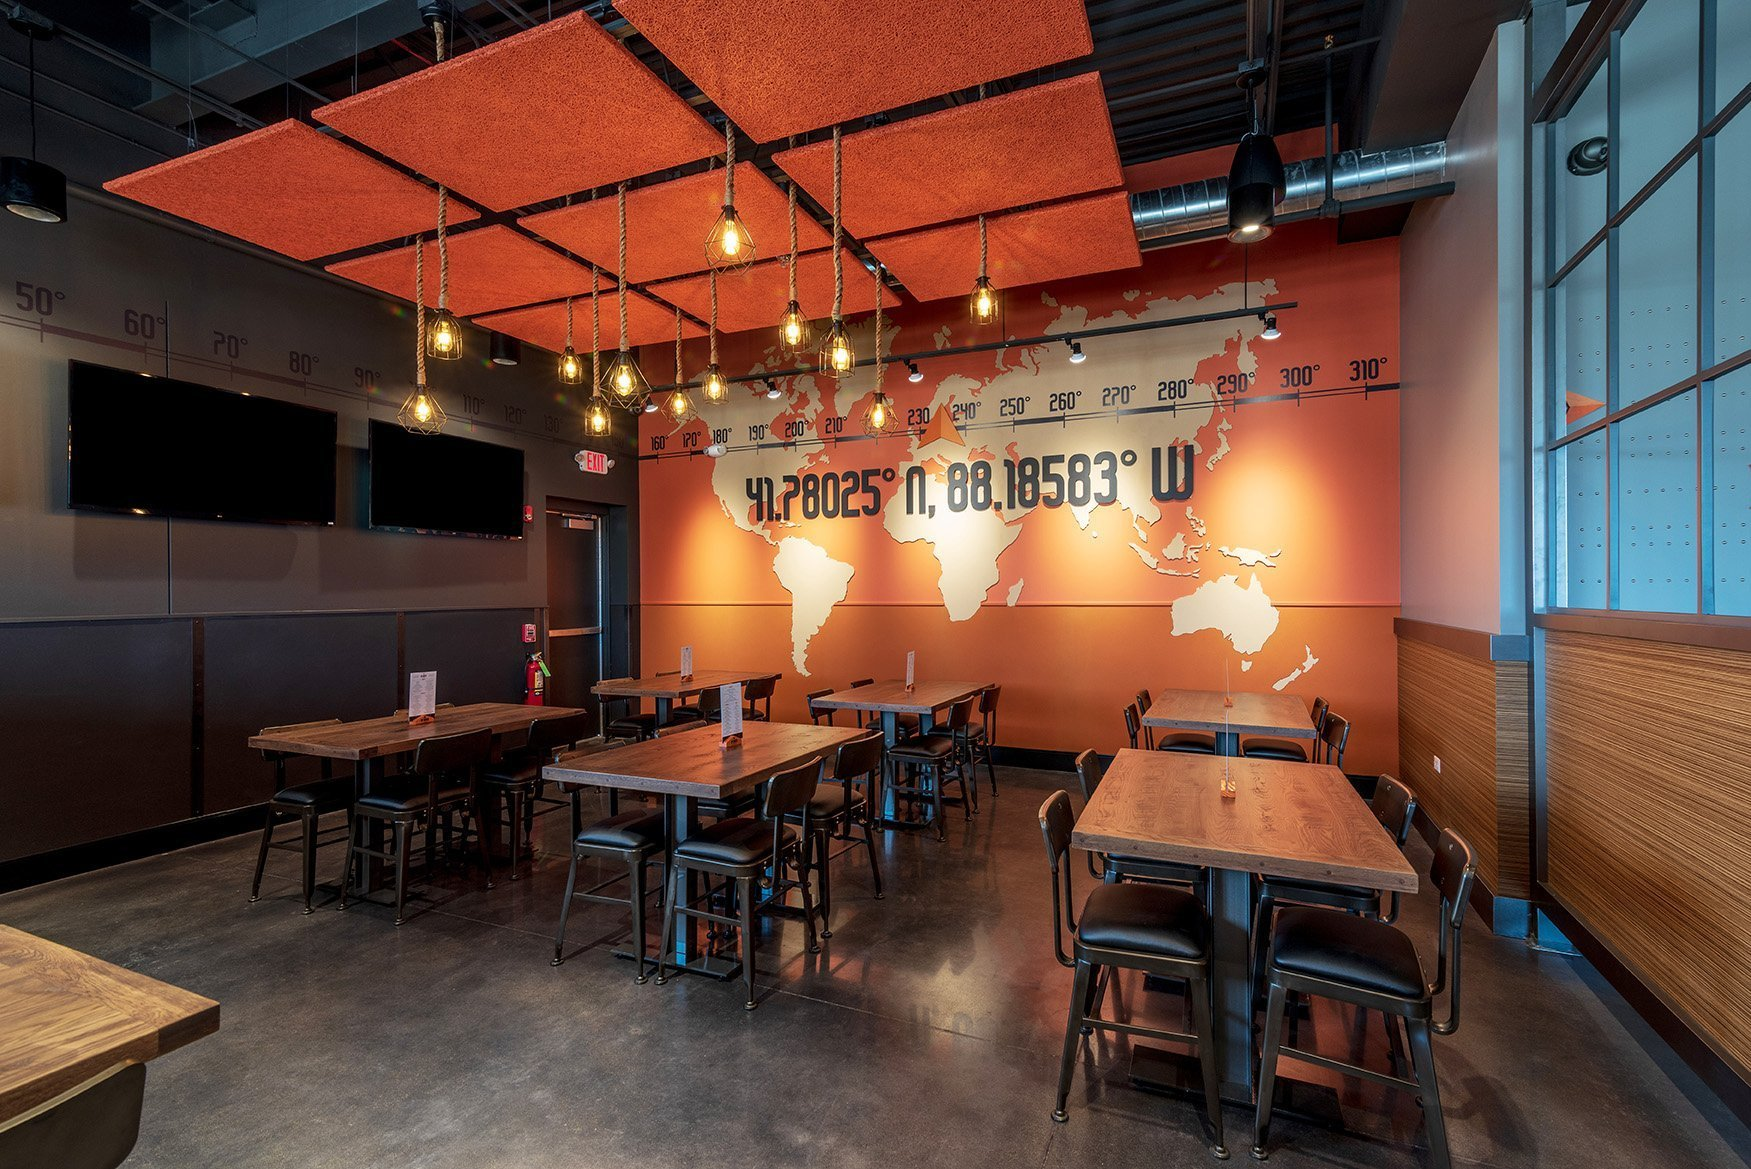 Inside Up North Ale House's semi private dining room featuring a bright orange wall with a large graphic the world map and the latitude and longitude numbers for the location of the restaurant